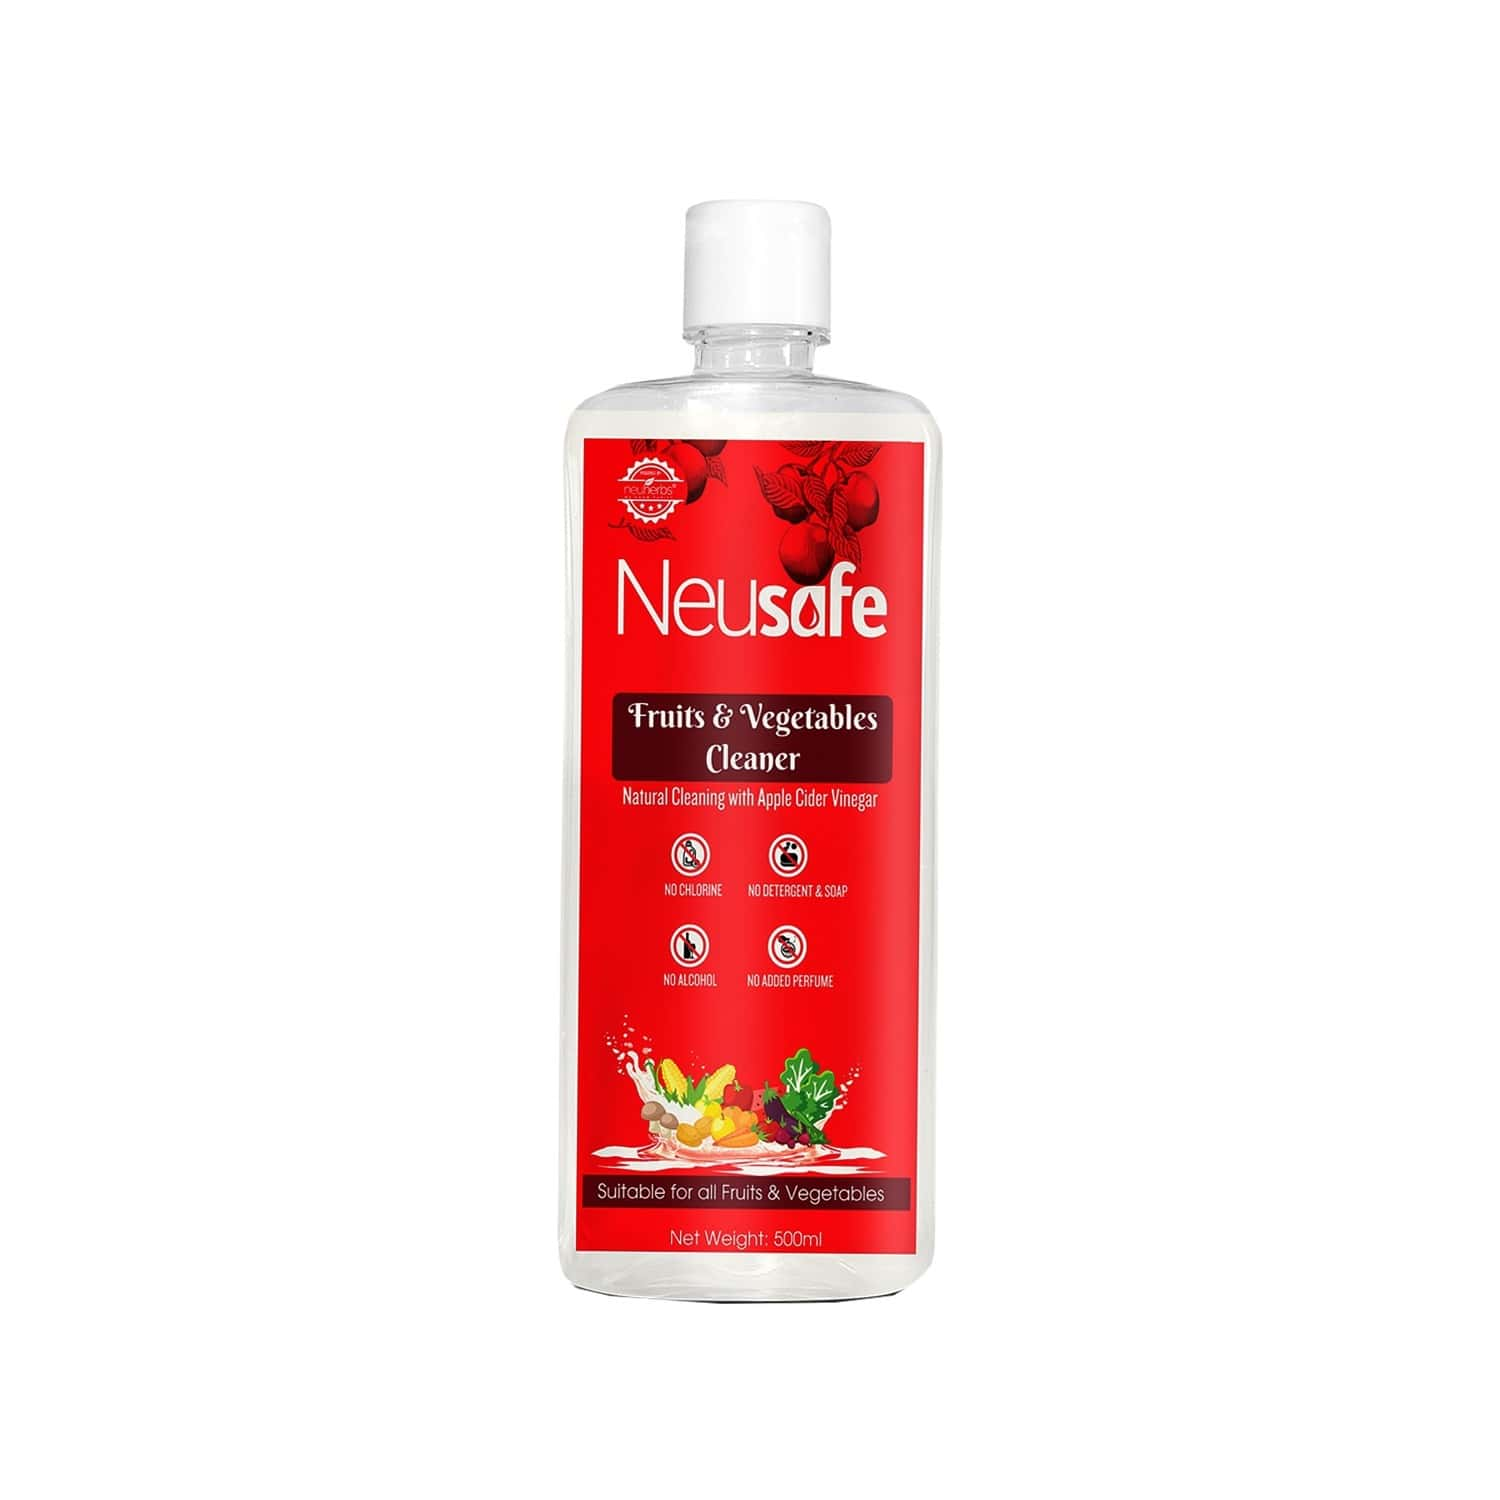 Neuherbs Neusafe Fruits And Vegetables Cleaner - 100% Naturally Washing Liquid, Removes Germs, Chemicals, Waxes, No Soap Added - 500ml